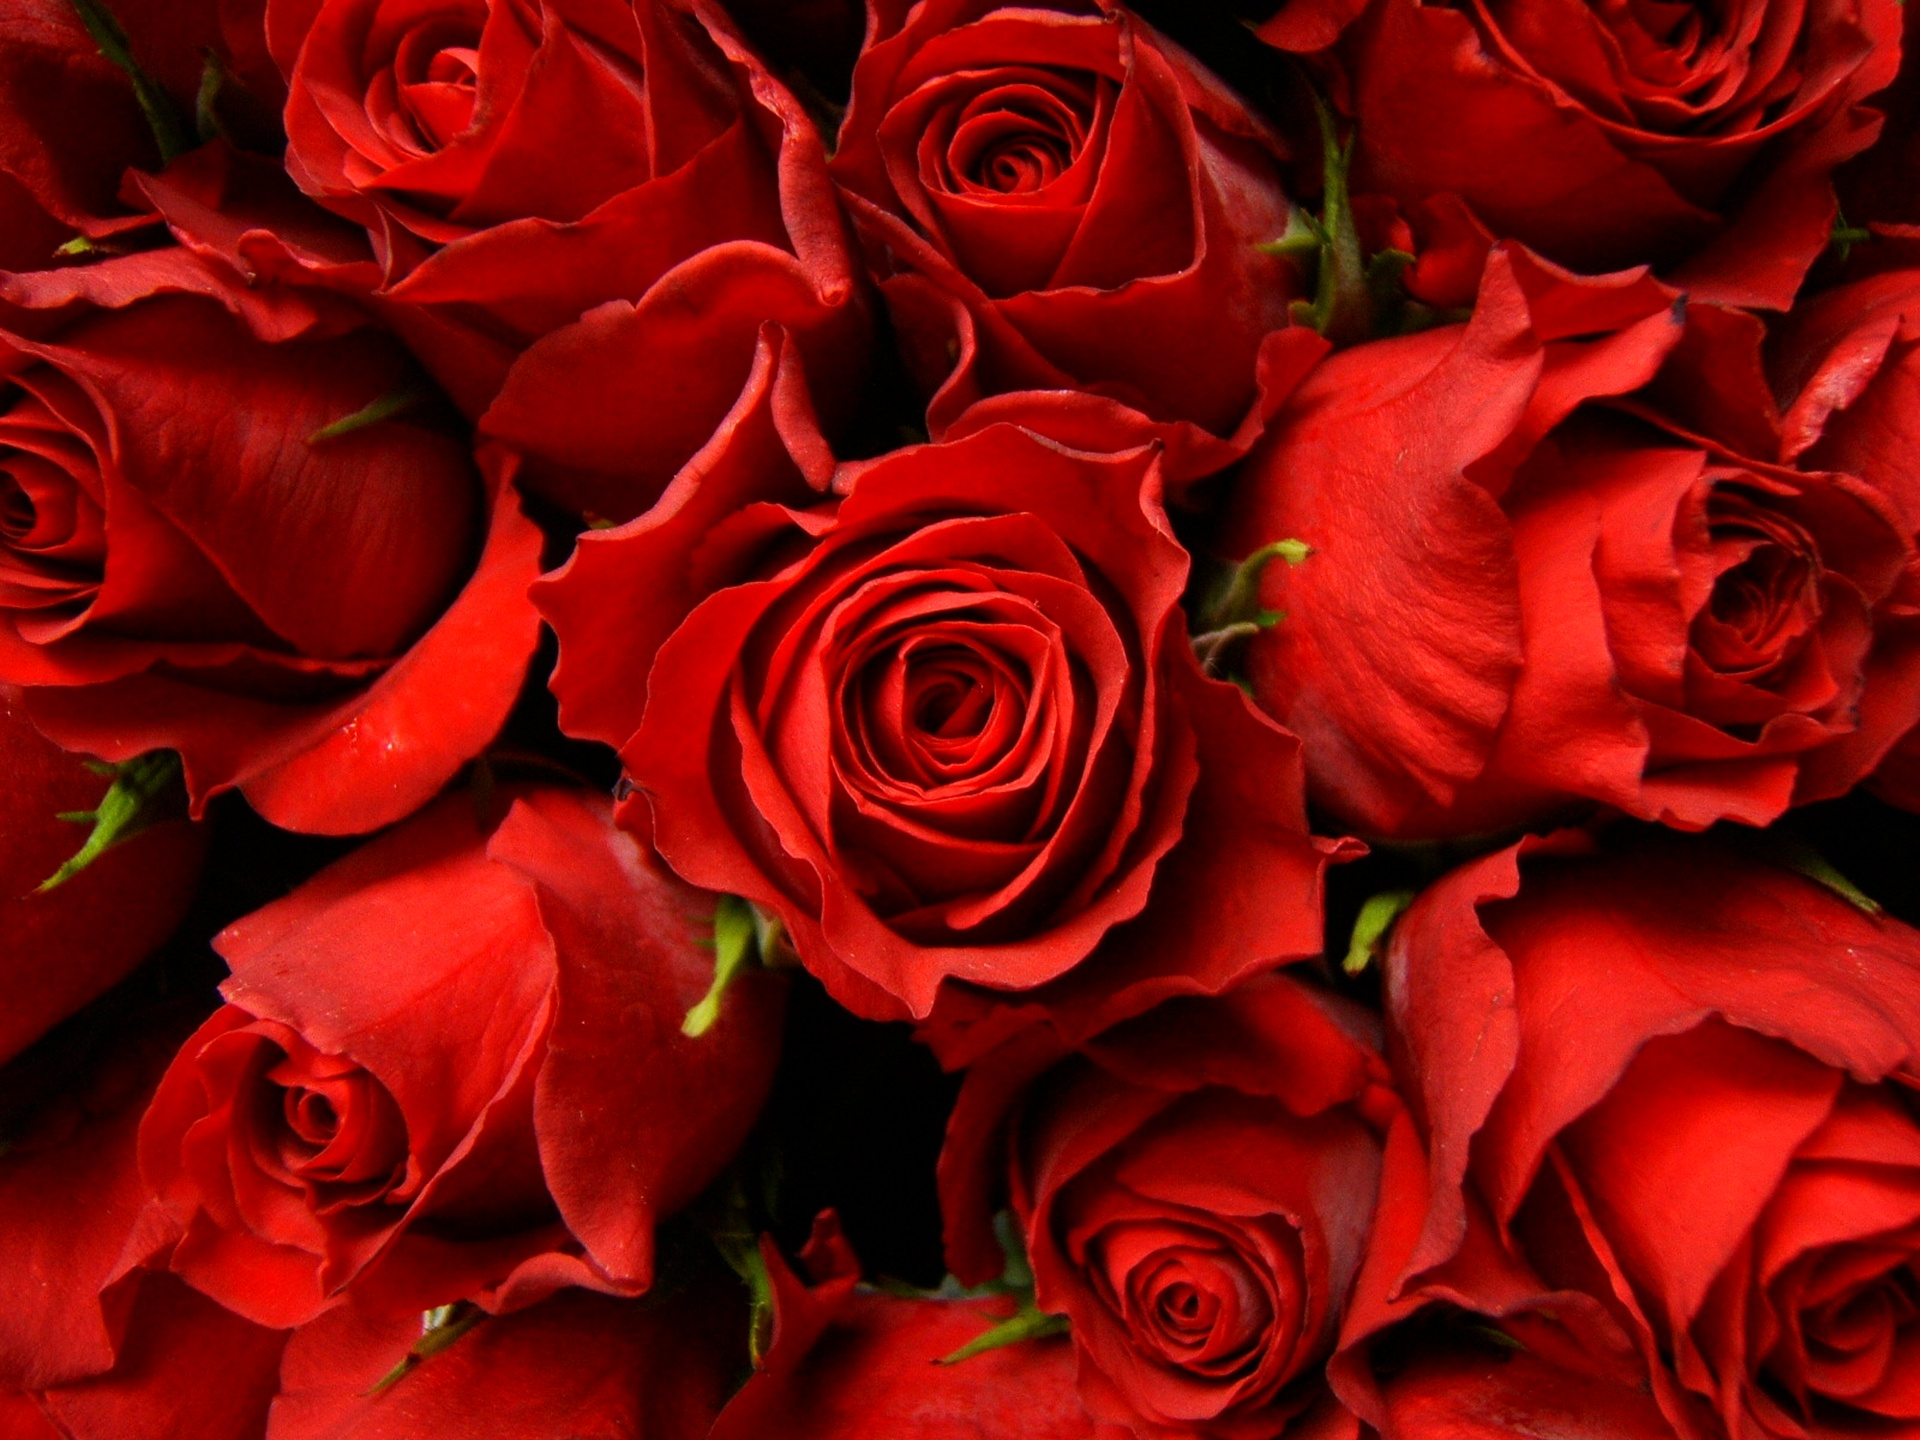 Red Roses Picture   Wallpaper High Definition High Quality 1920x1440